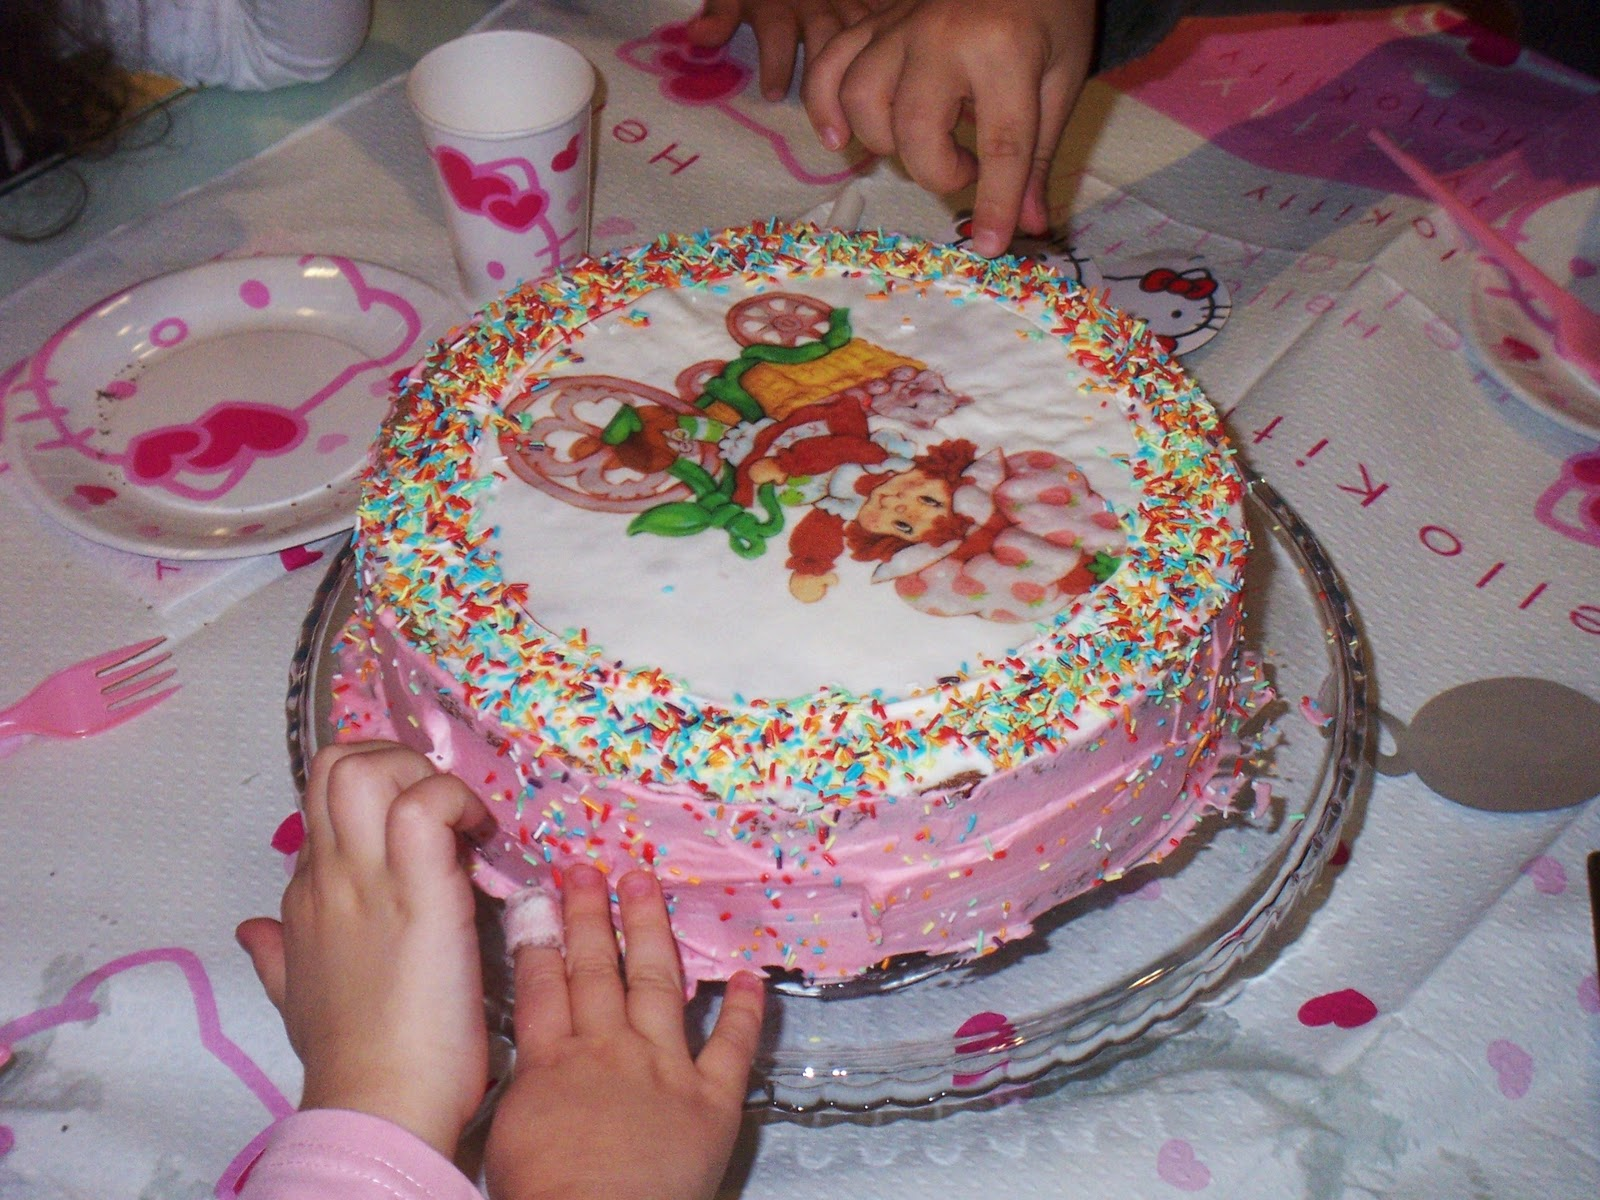 ... Memories: Scenes from the weekend: cakes, lasagna, vino and more cake